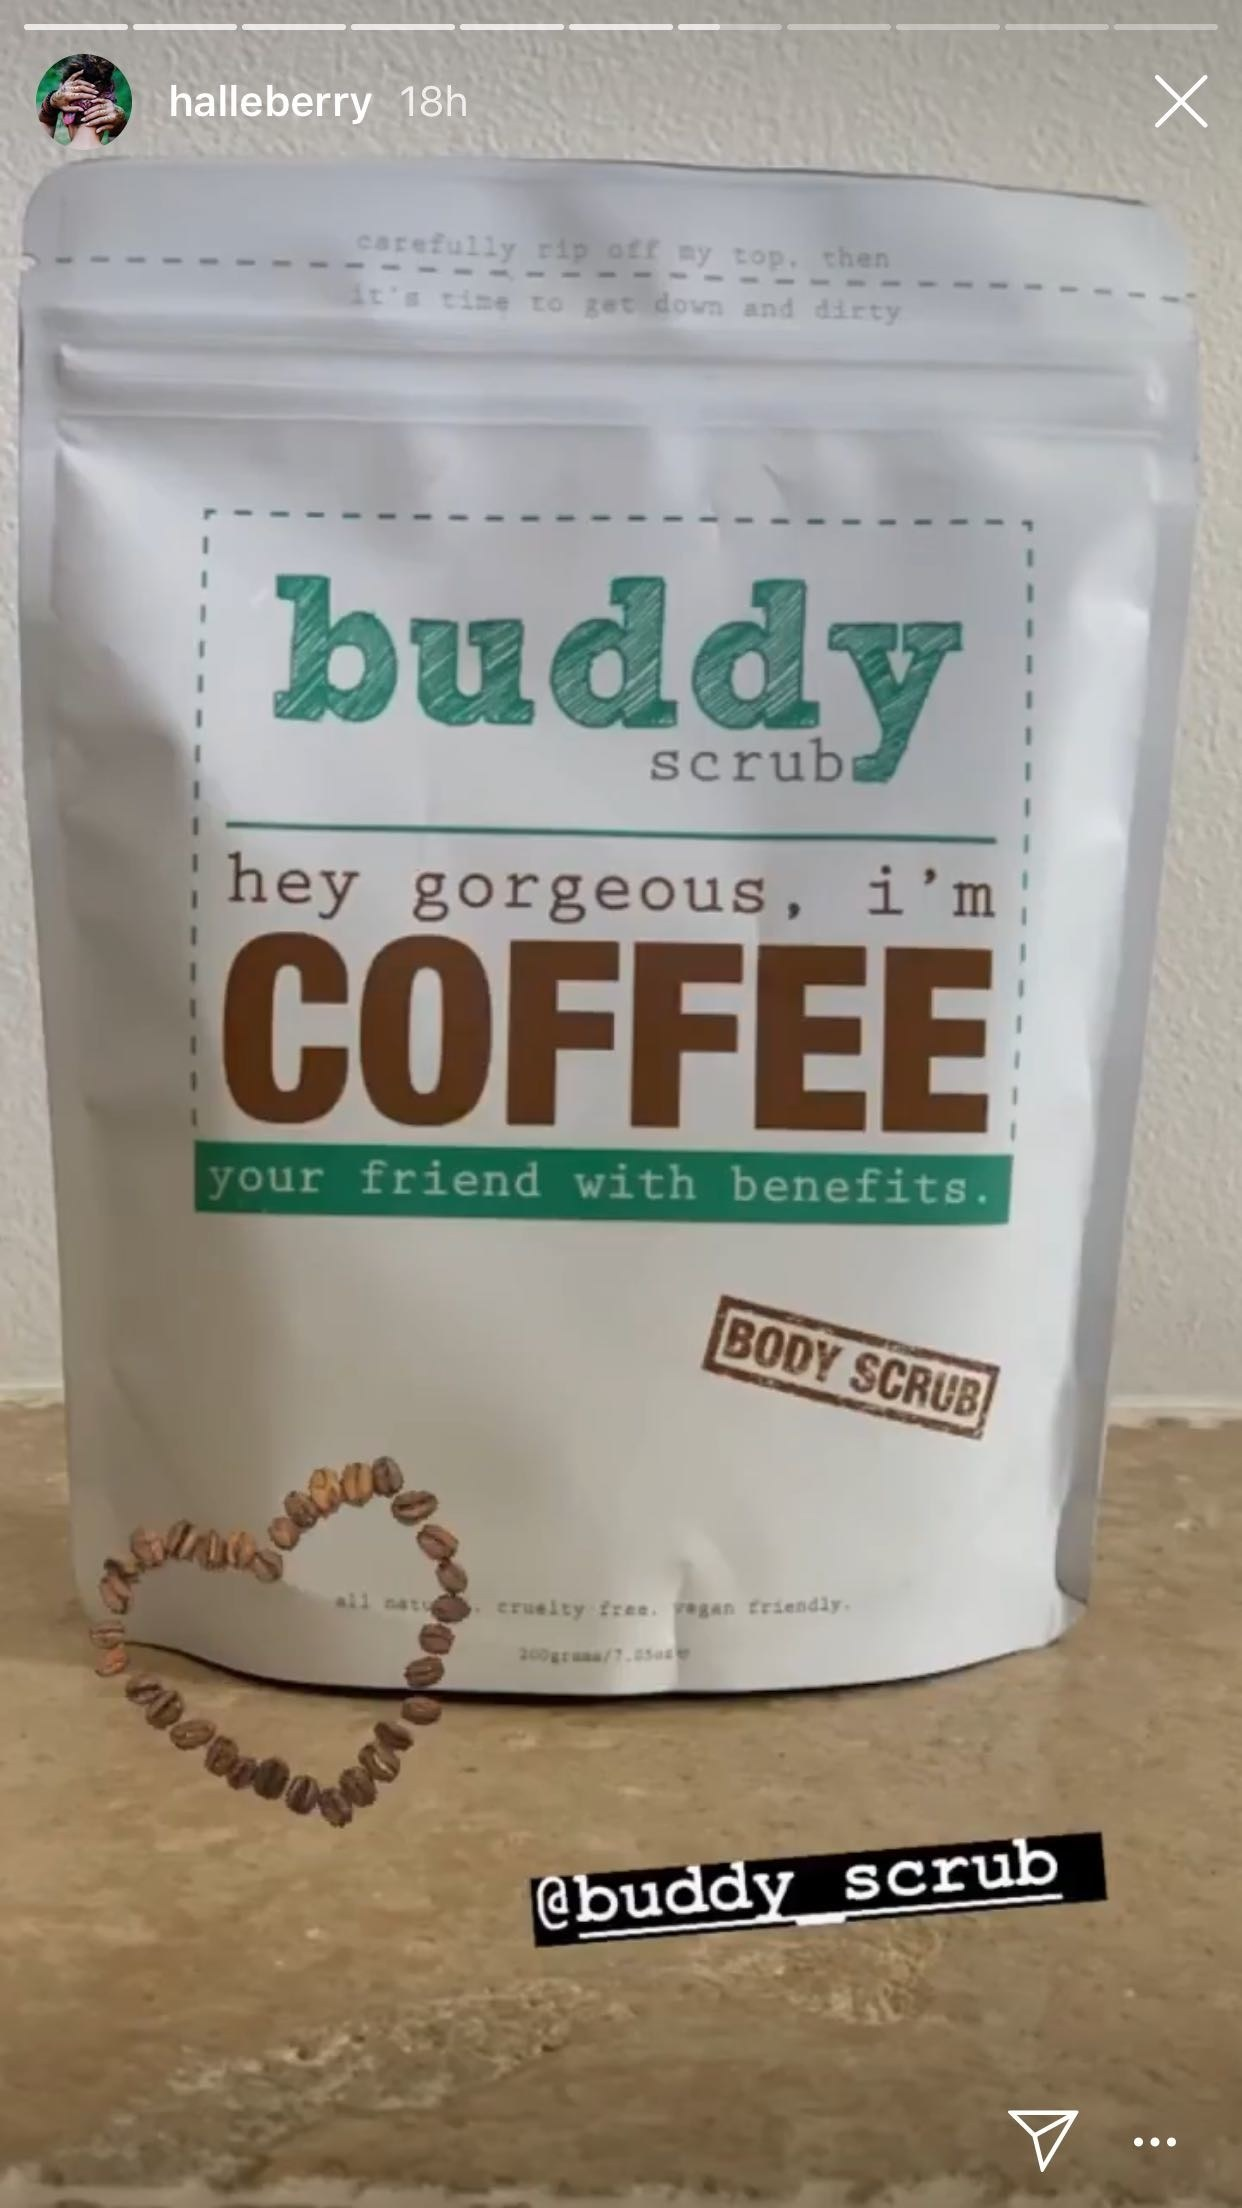 Buddy Scrub Hey Gorgeous, I?m Coffee Boddy Scrub